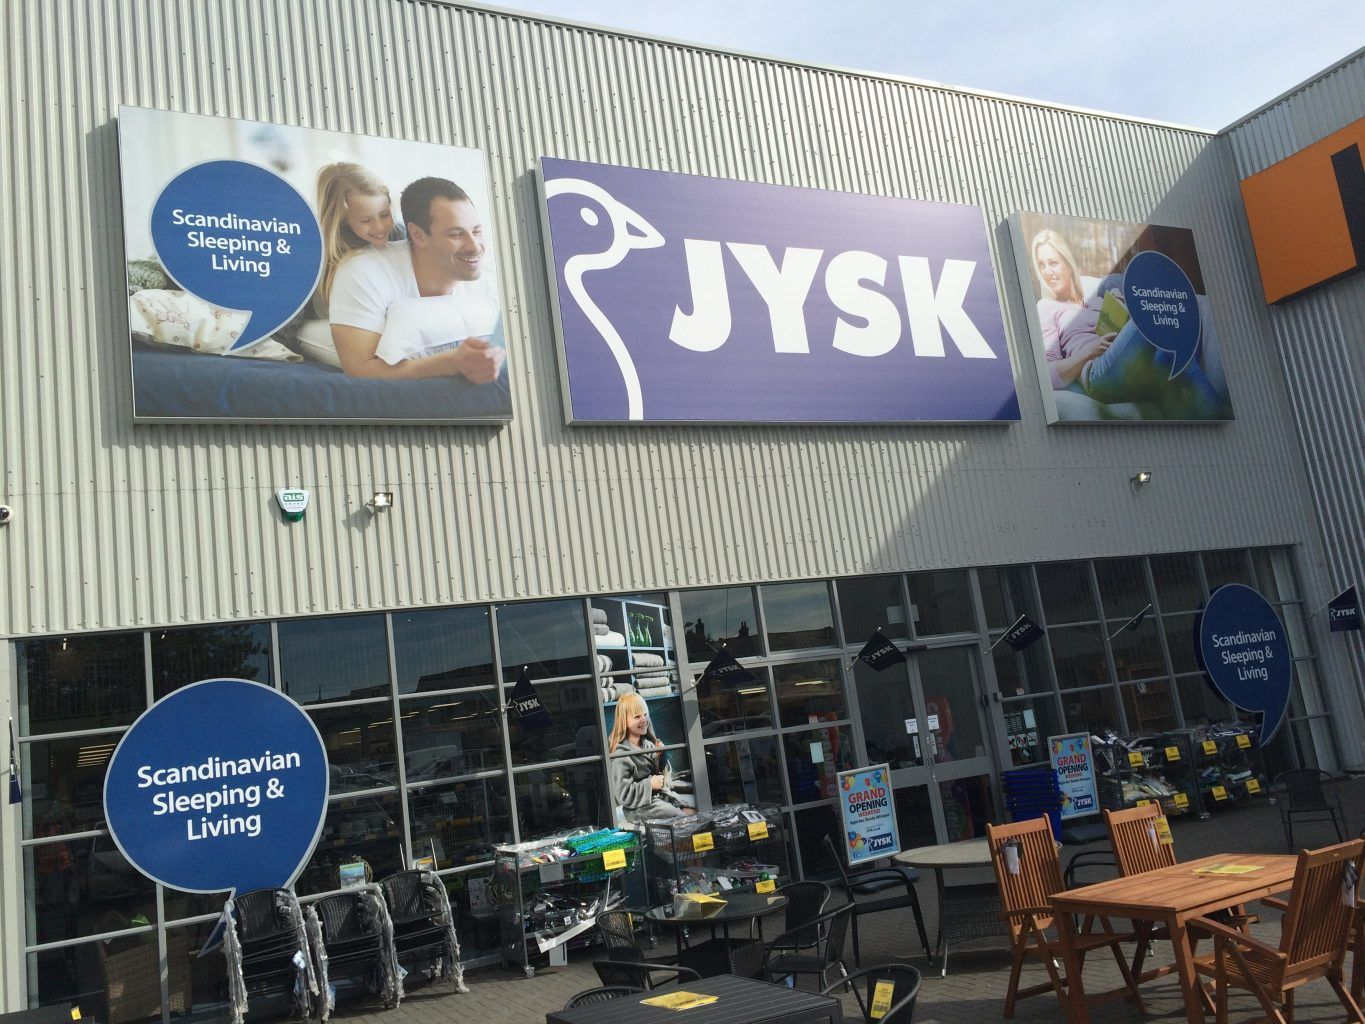 JYSK Retail sign face illuminated flexface